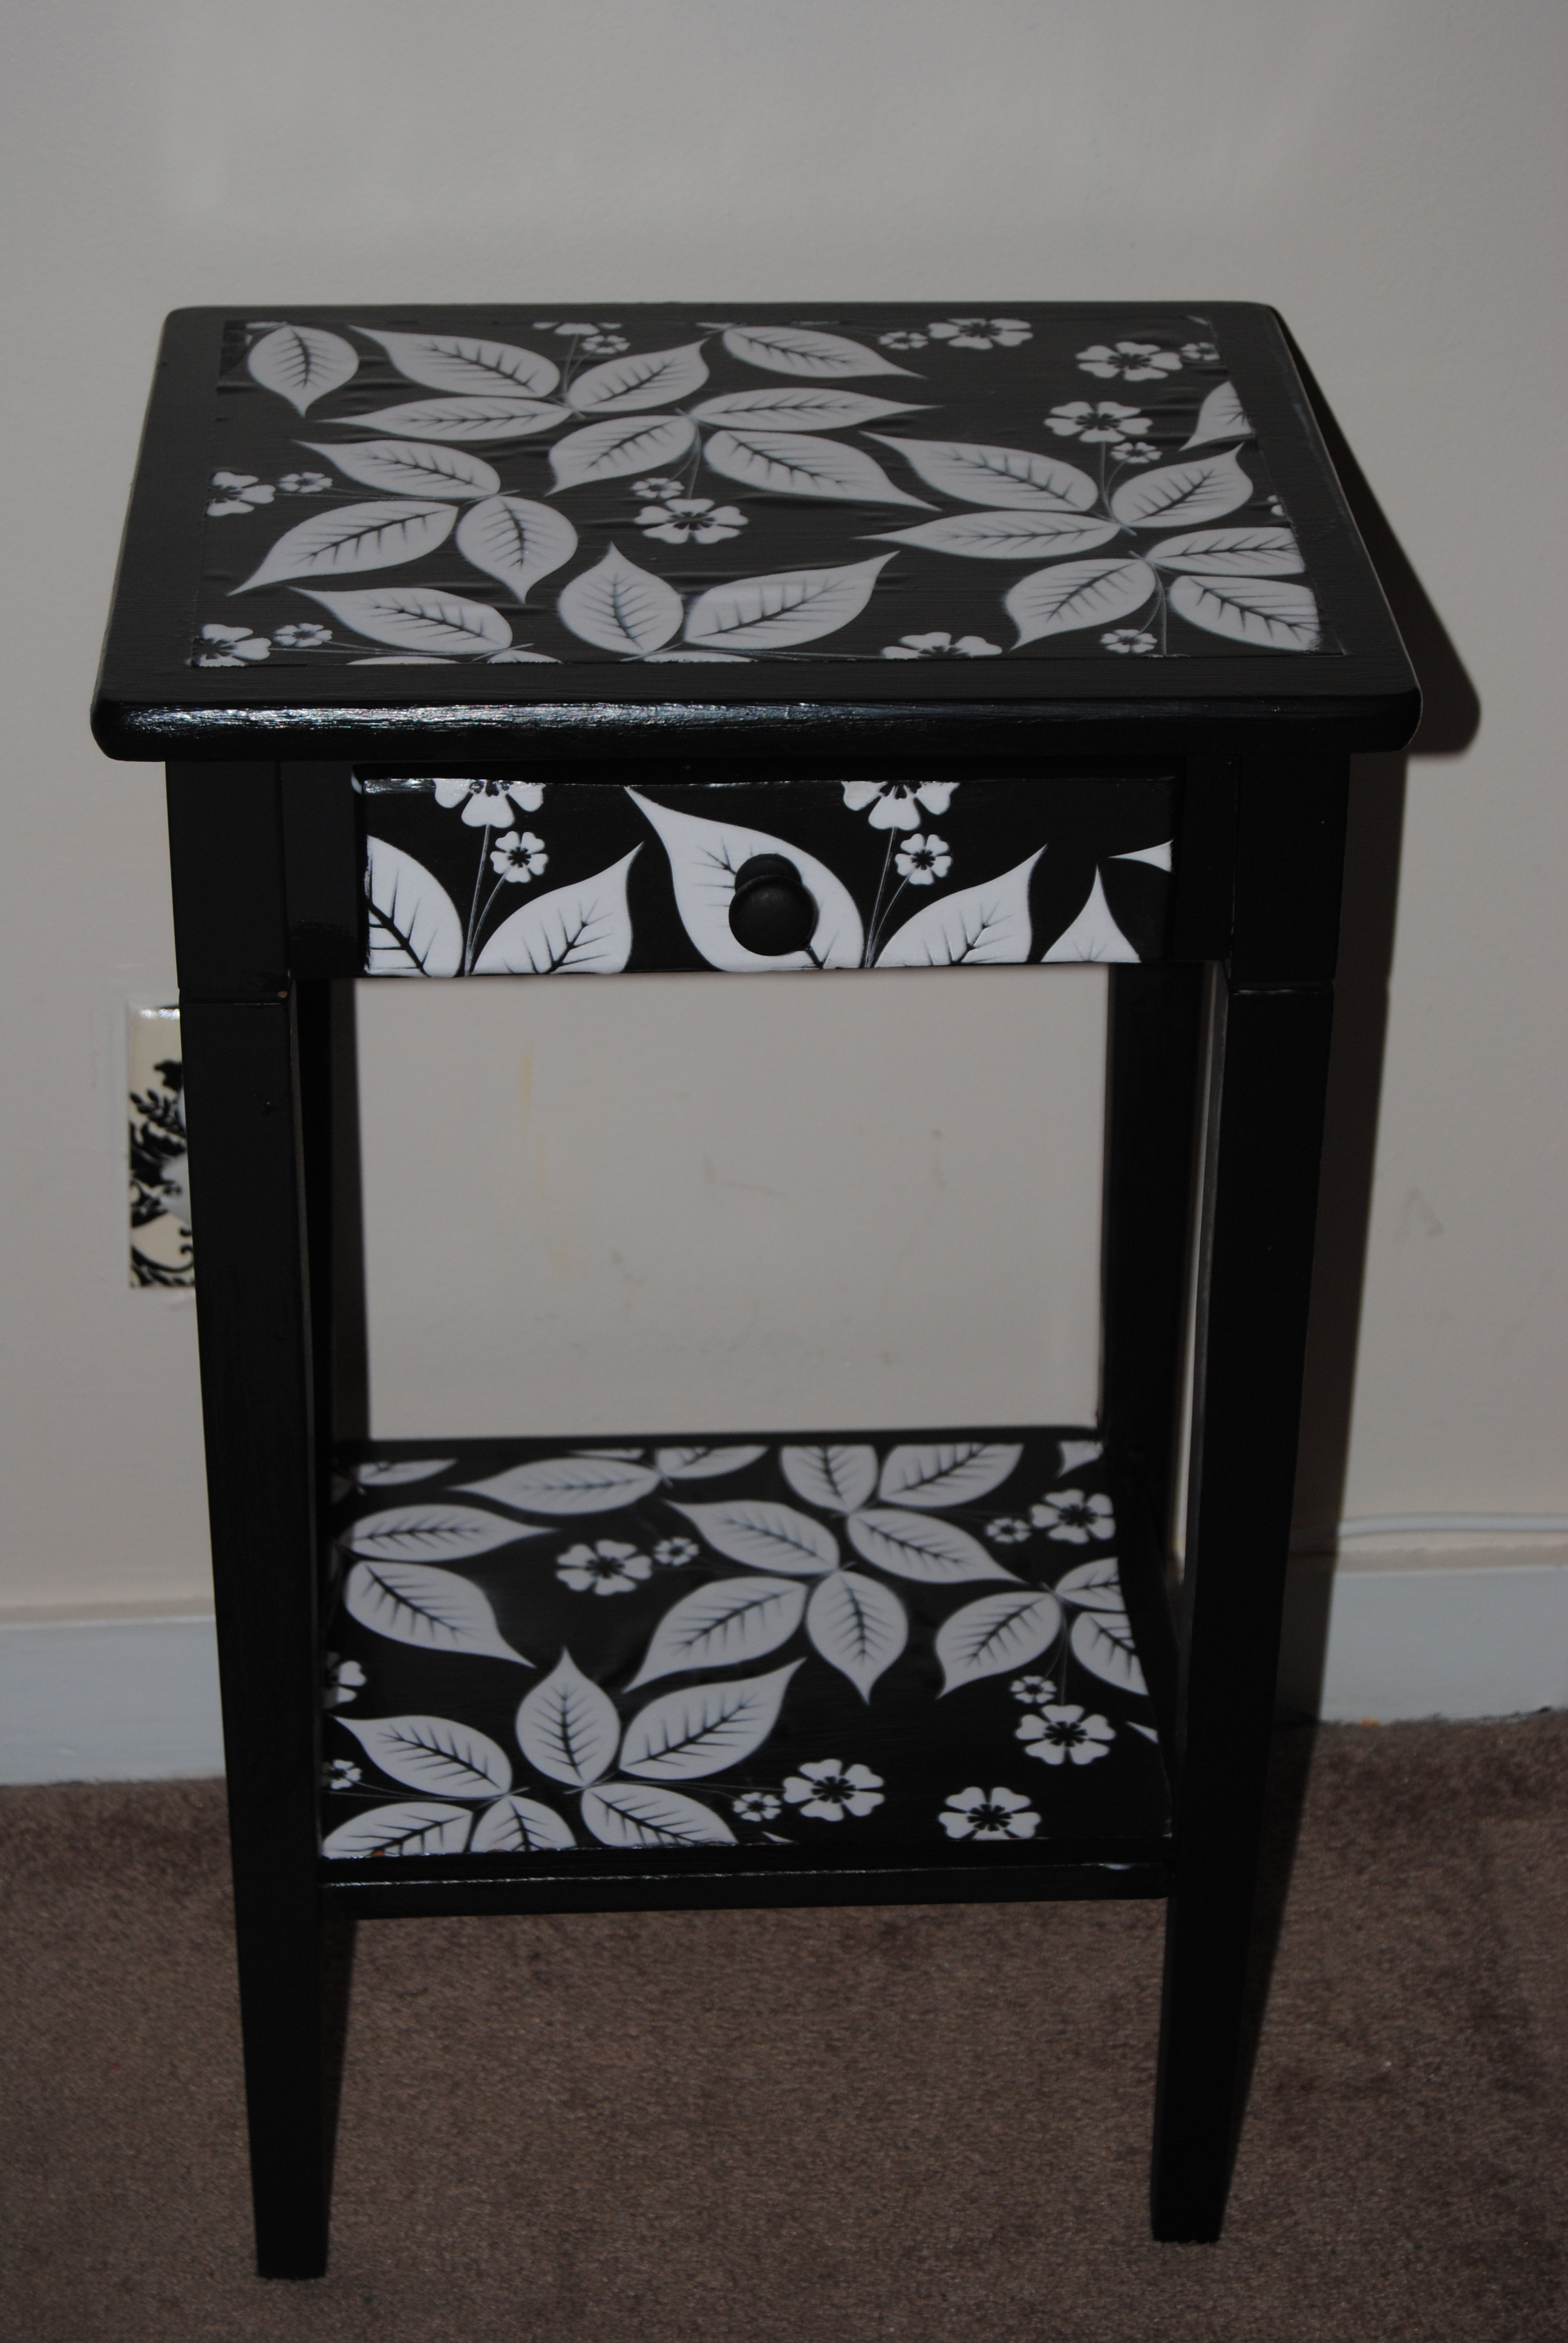 bedside table restyled with decoupage the upcycle upcycled accent little tip had few air bubbles appear surface used sewing needle poking tiny hole bubble smoothed out and then